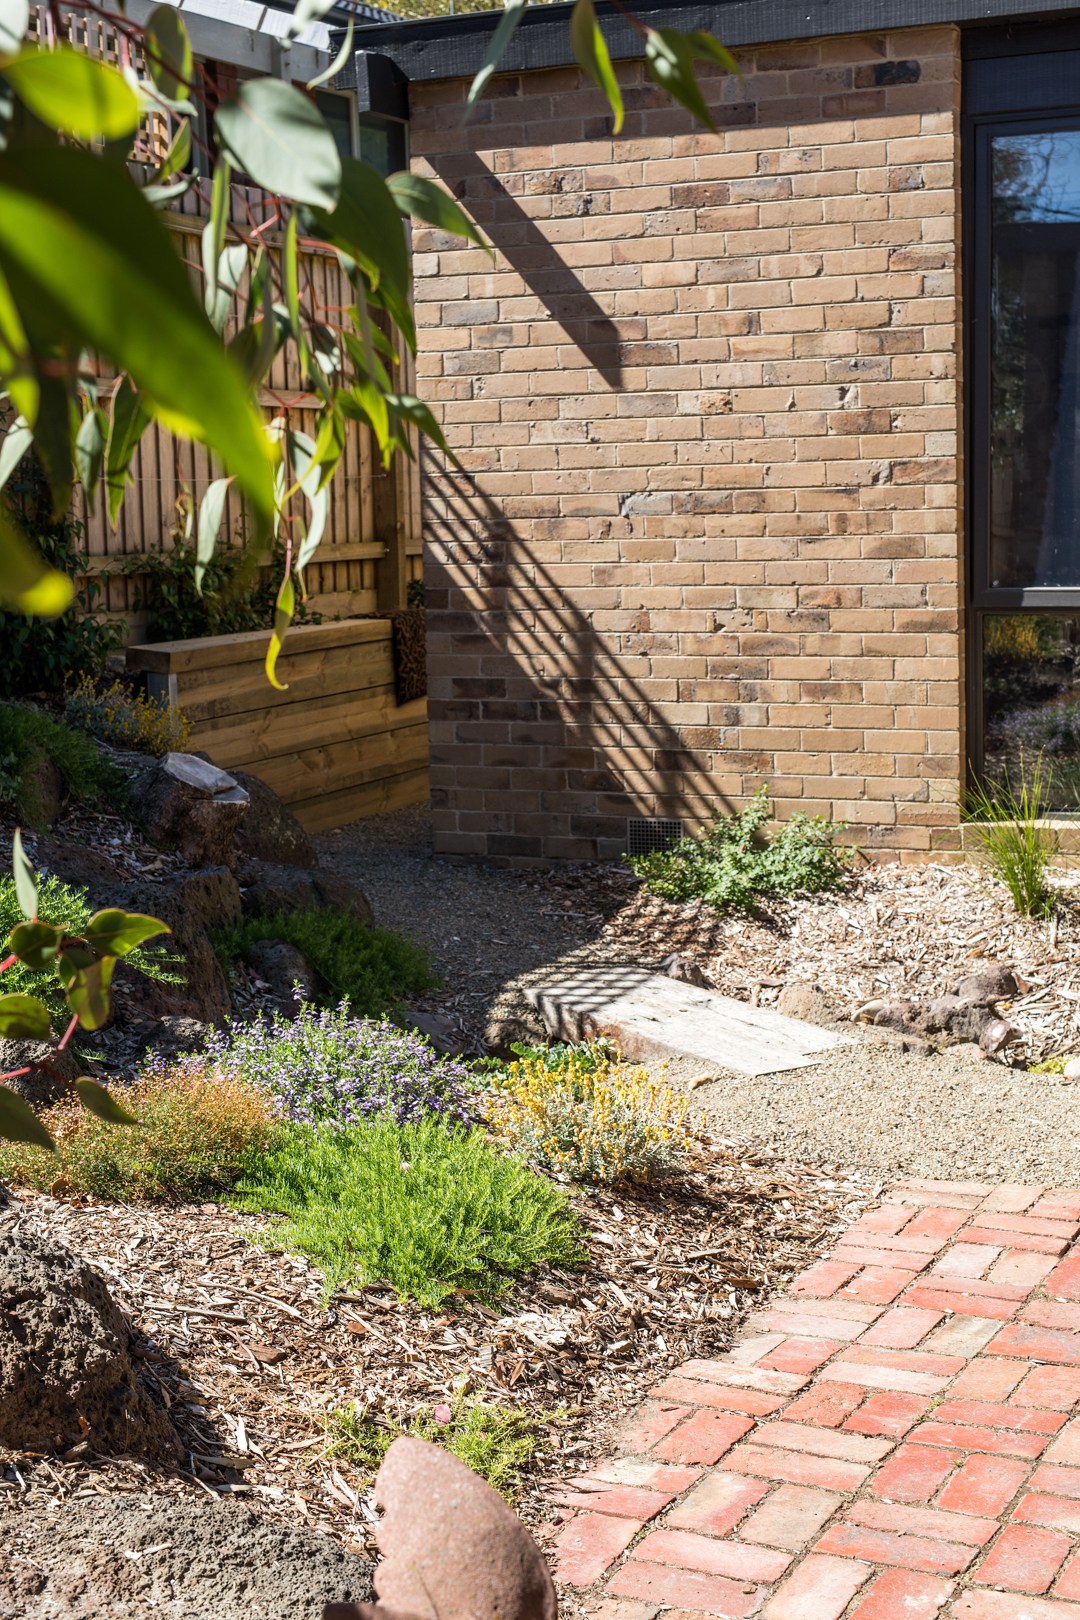 Landscaping By Ben Harris Gardens.  Photography by Charlie Kinross